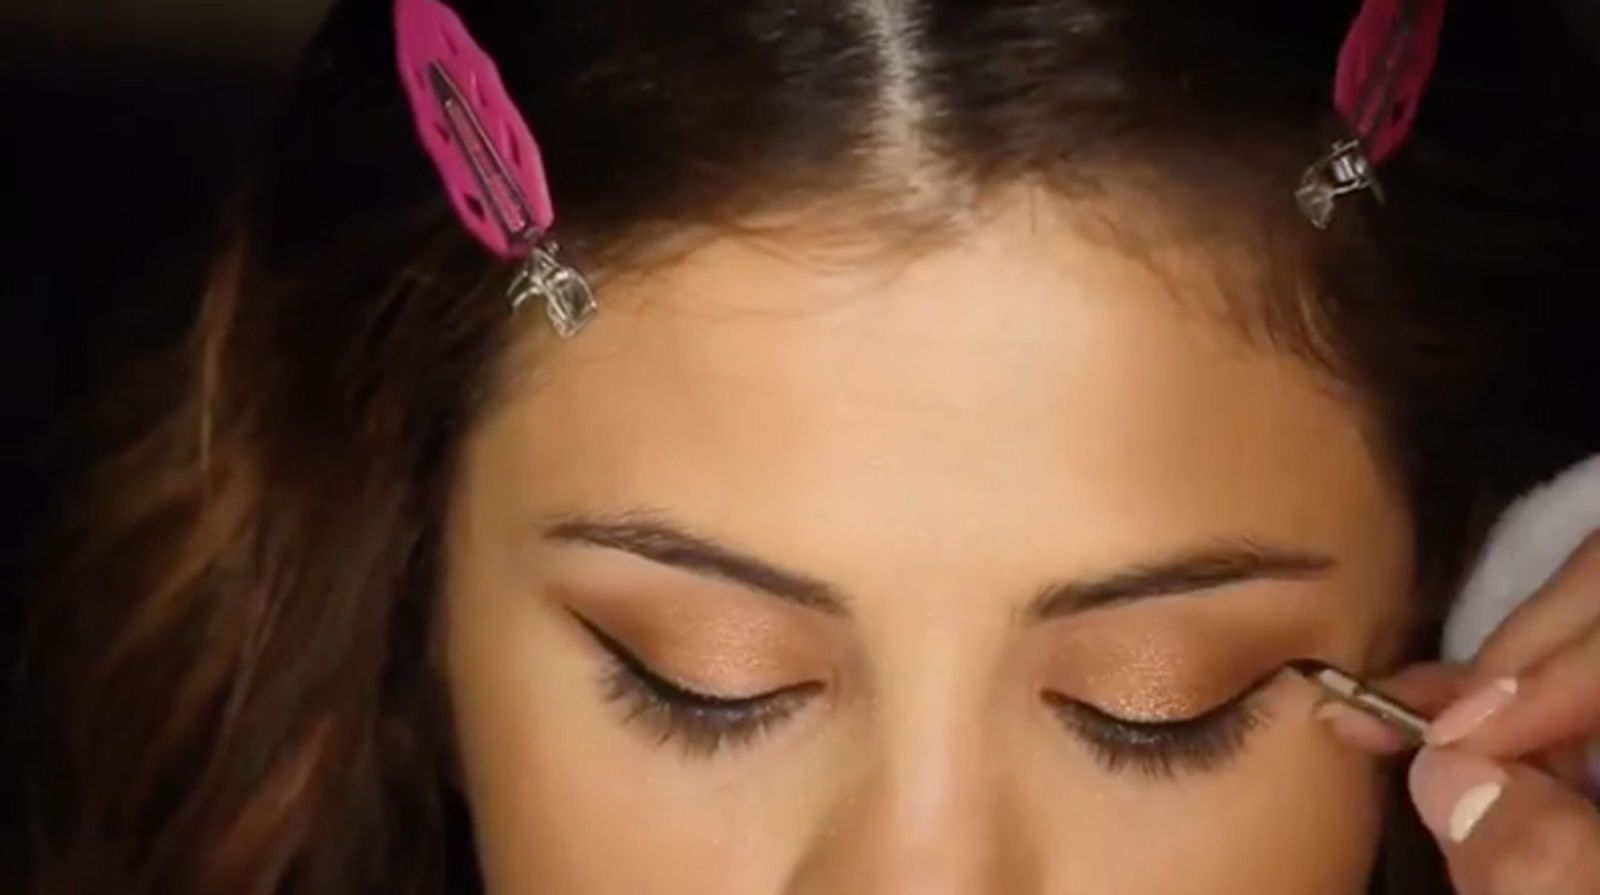 This Makeup Tutorial Will Show You How to Look Like Selena Gomez